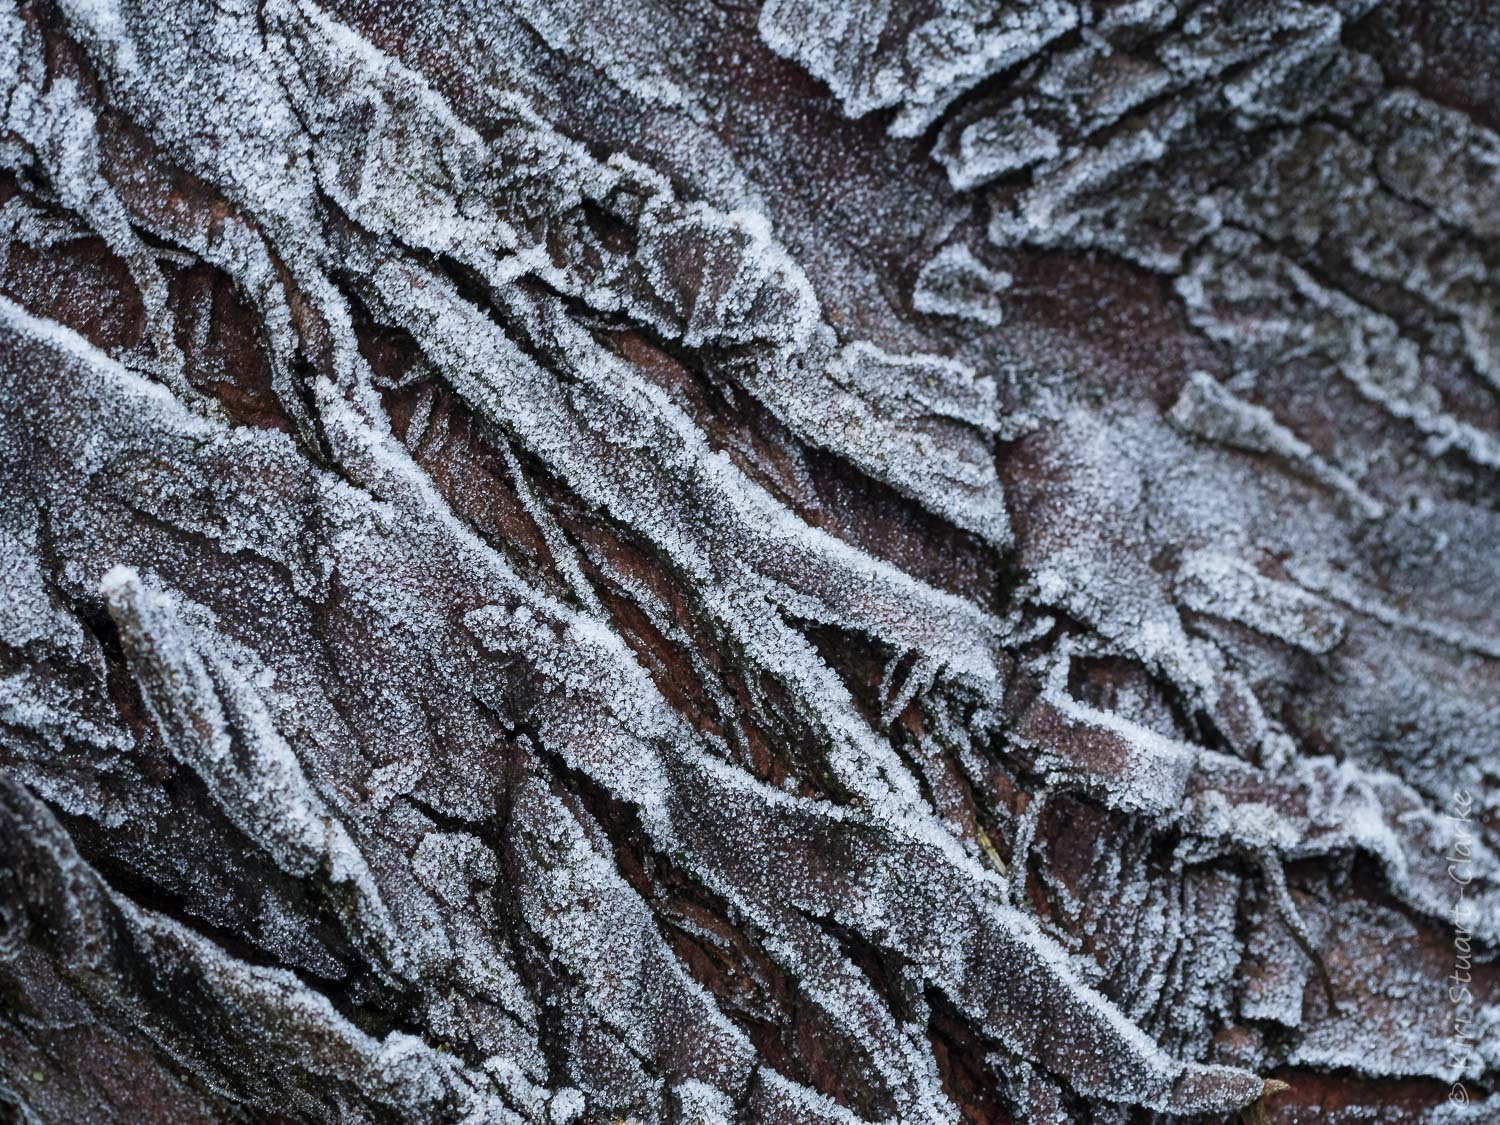 Bark covered in white frost